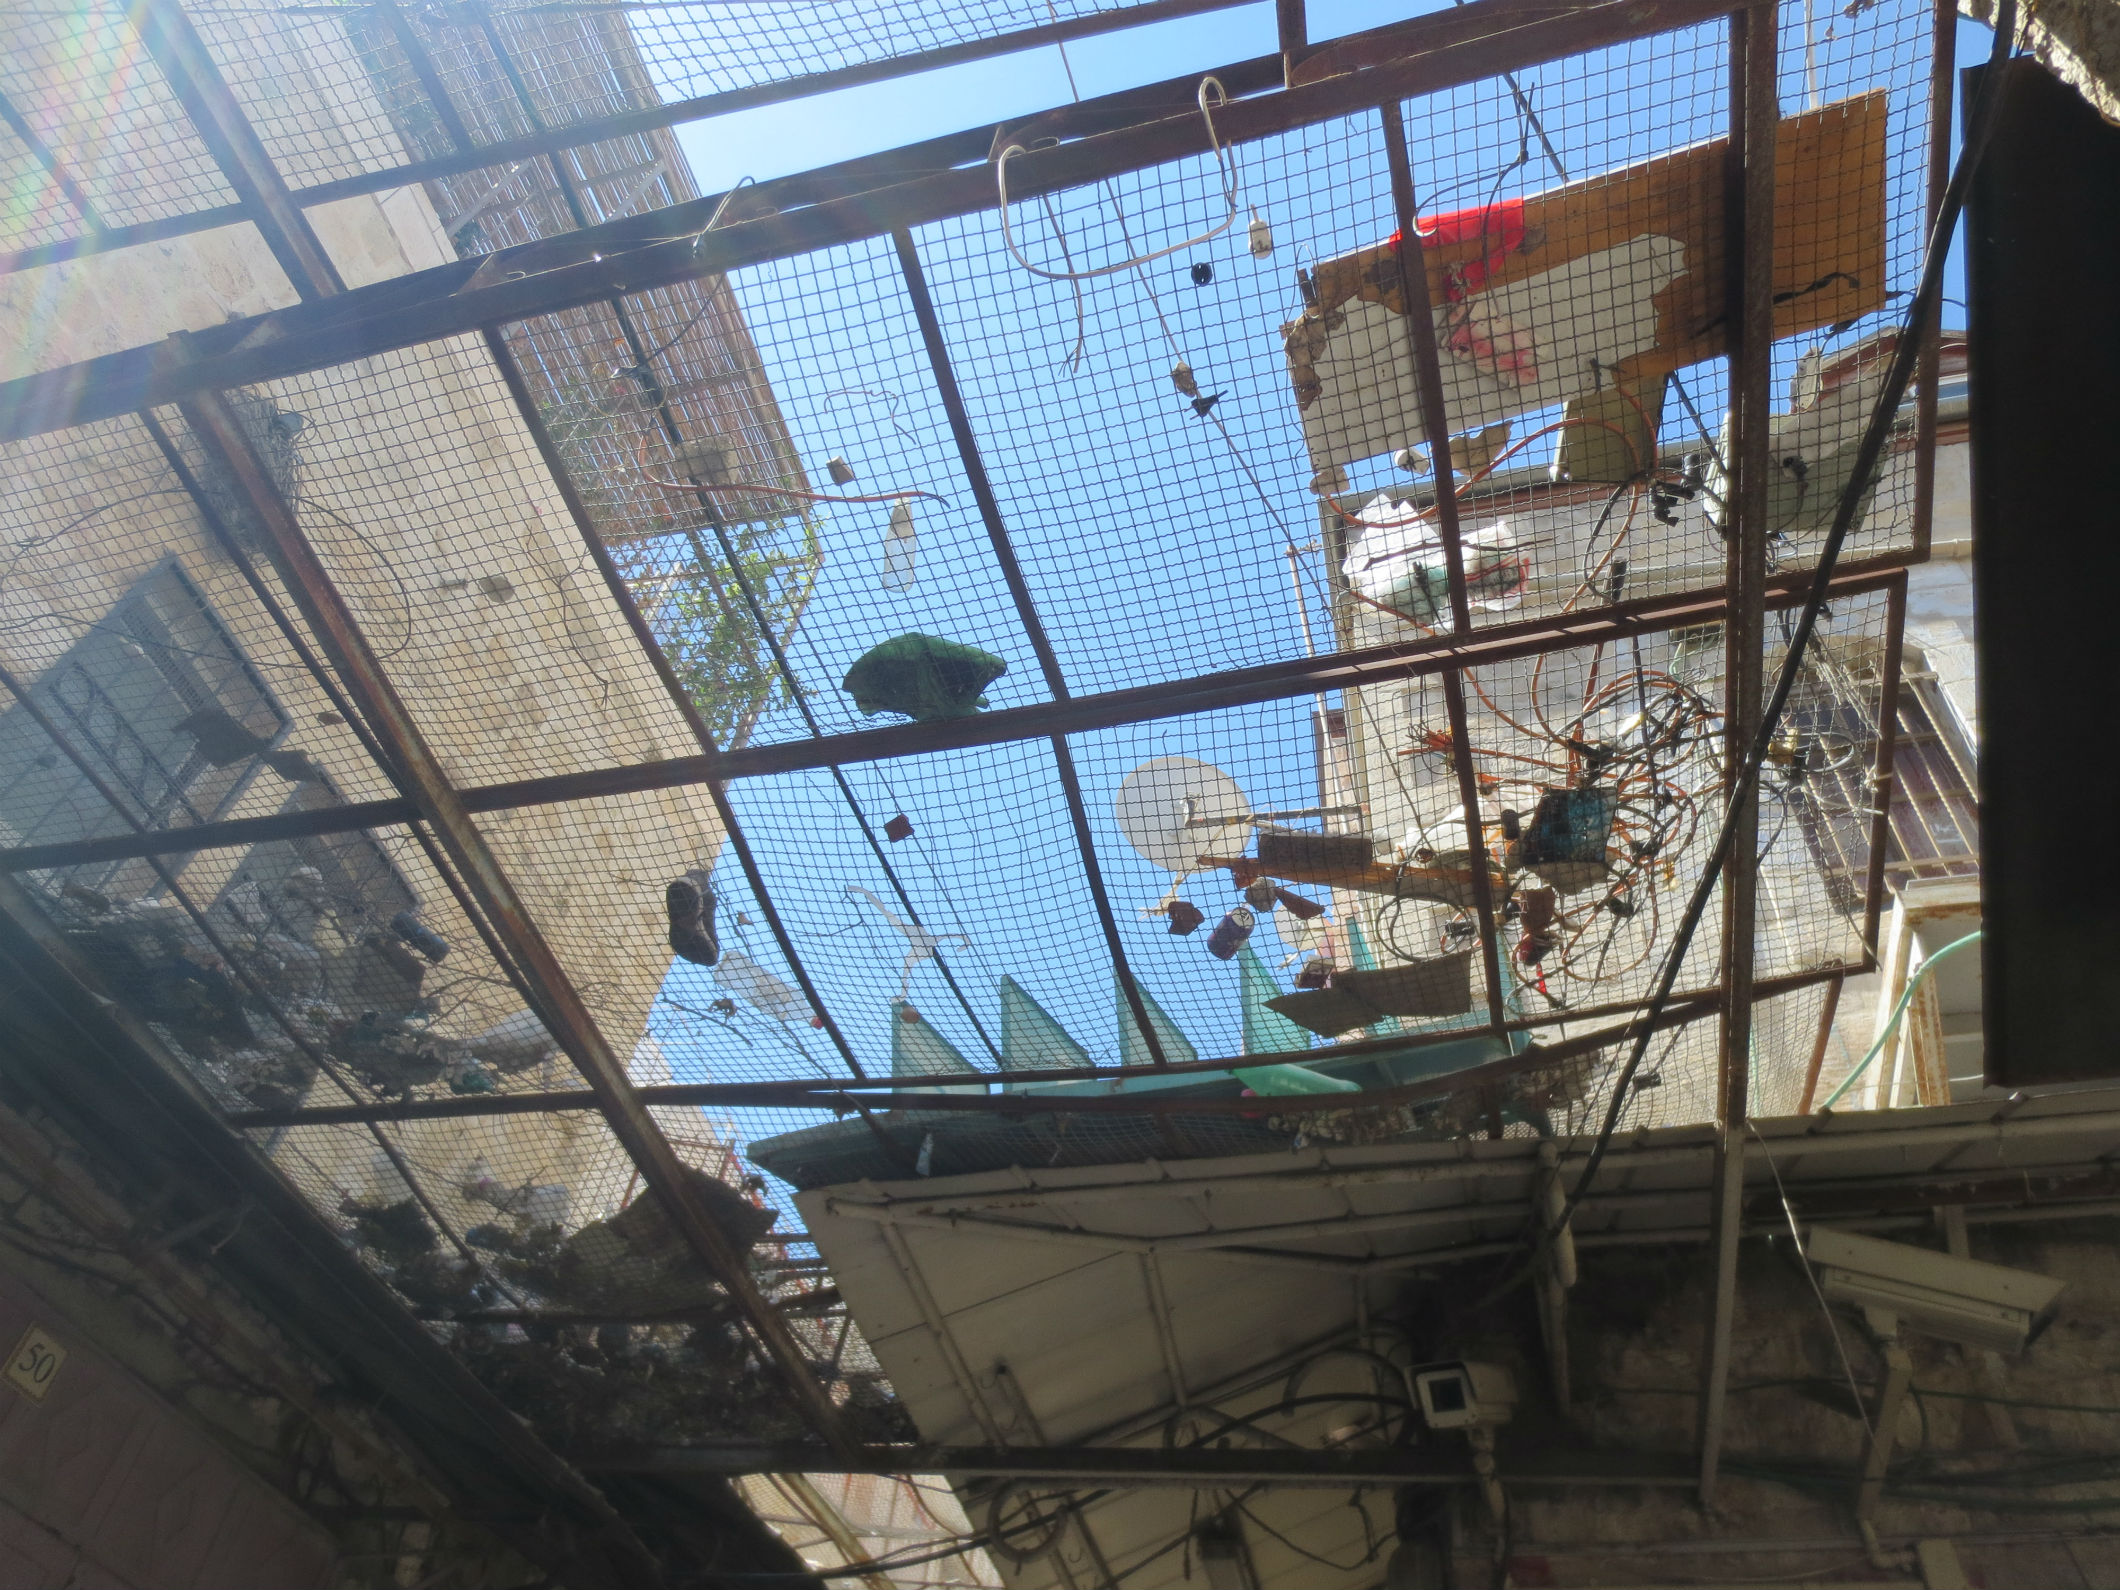 Nets above the narrow alleys in Hebron to prevent trash being thrown on Arab shopkeepers by the Jewish settlers living above.